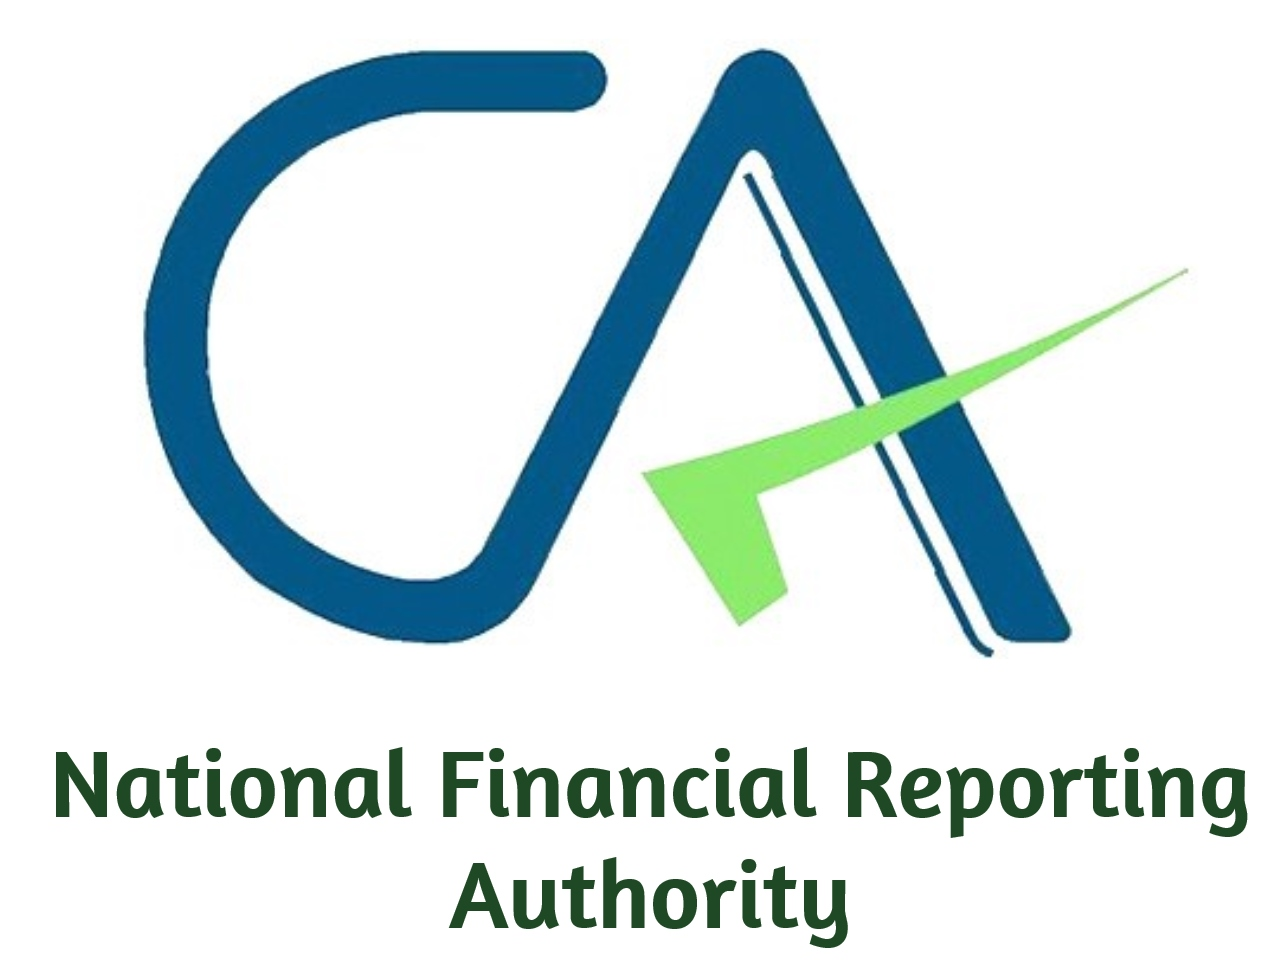 MCA notifies NFRA effective from October 1, 2018